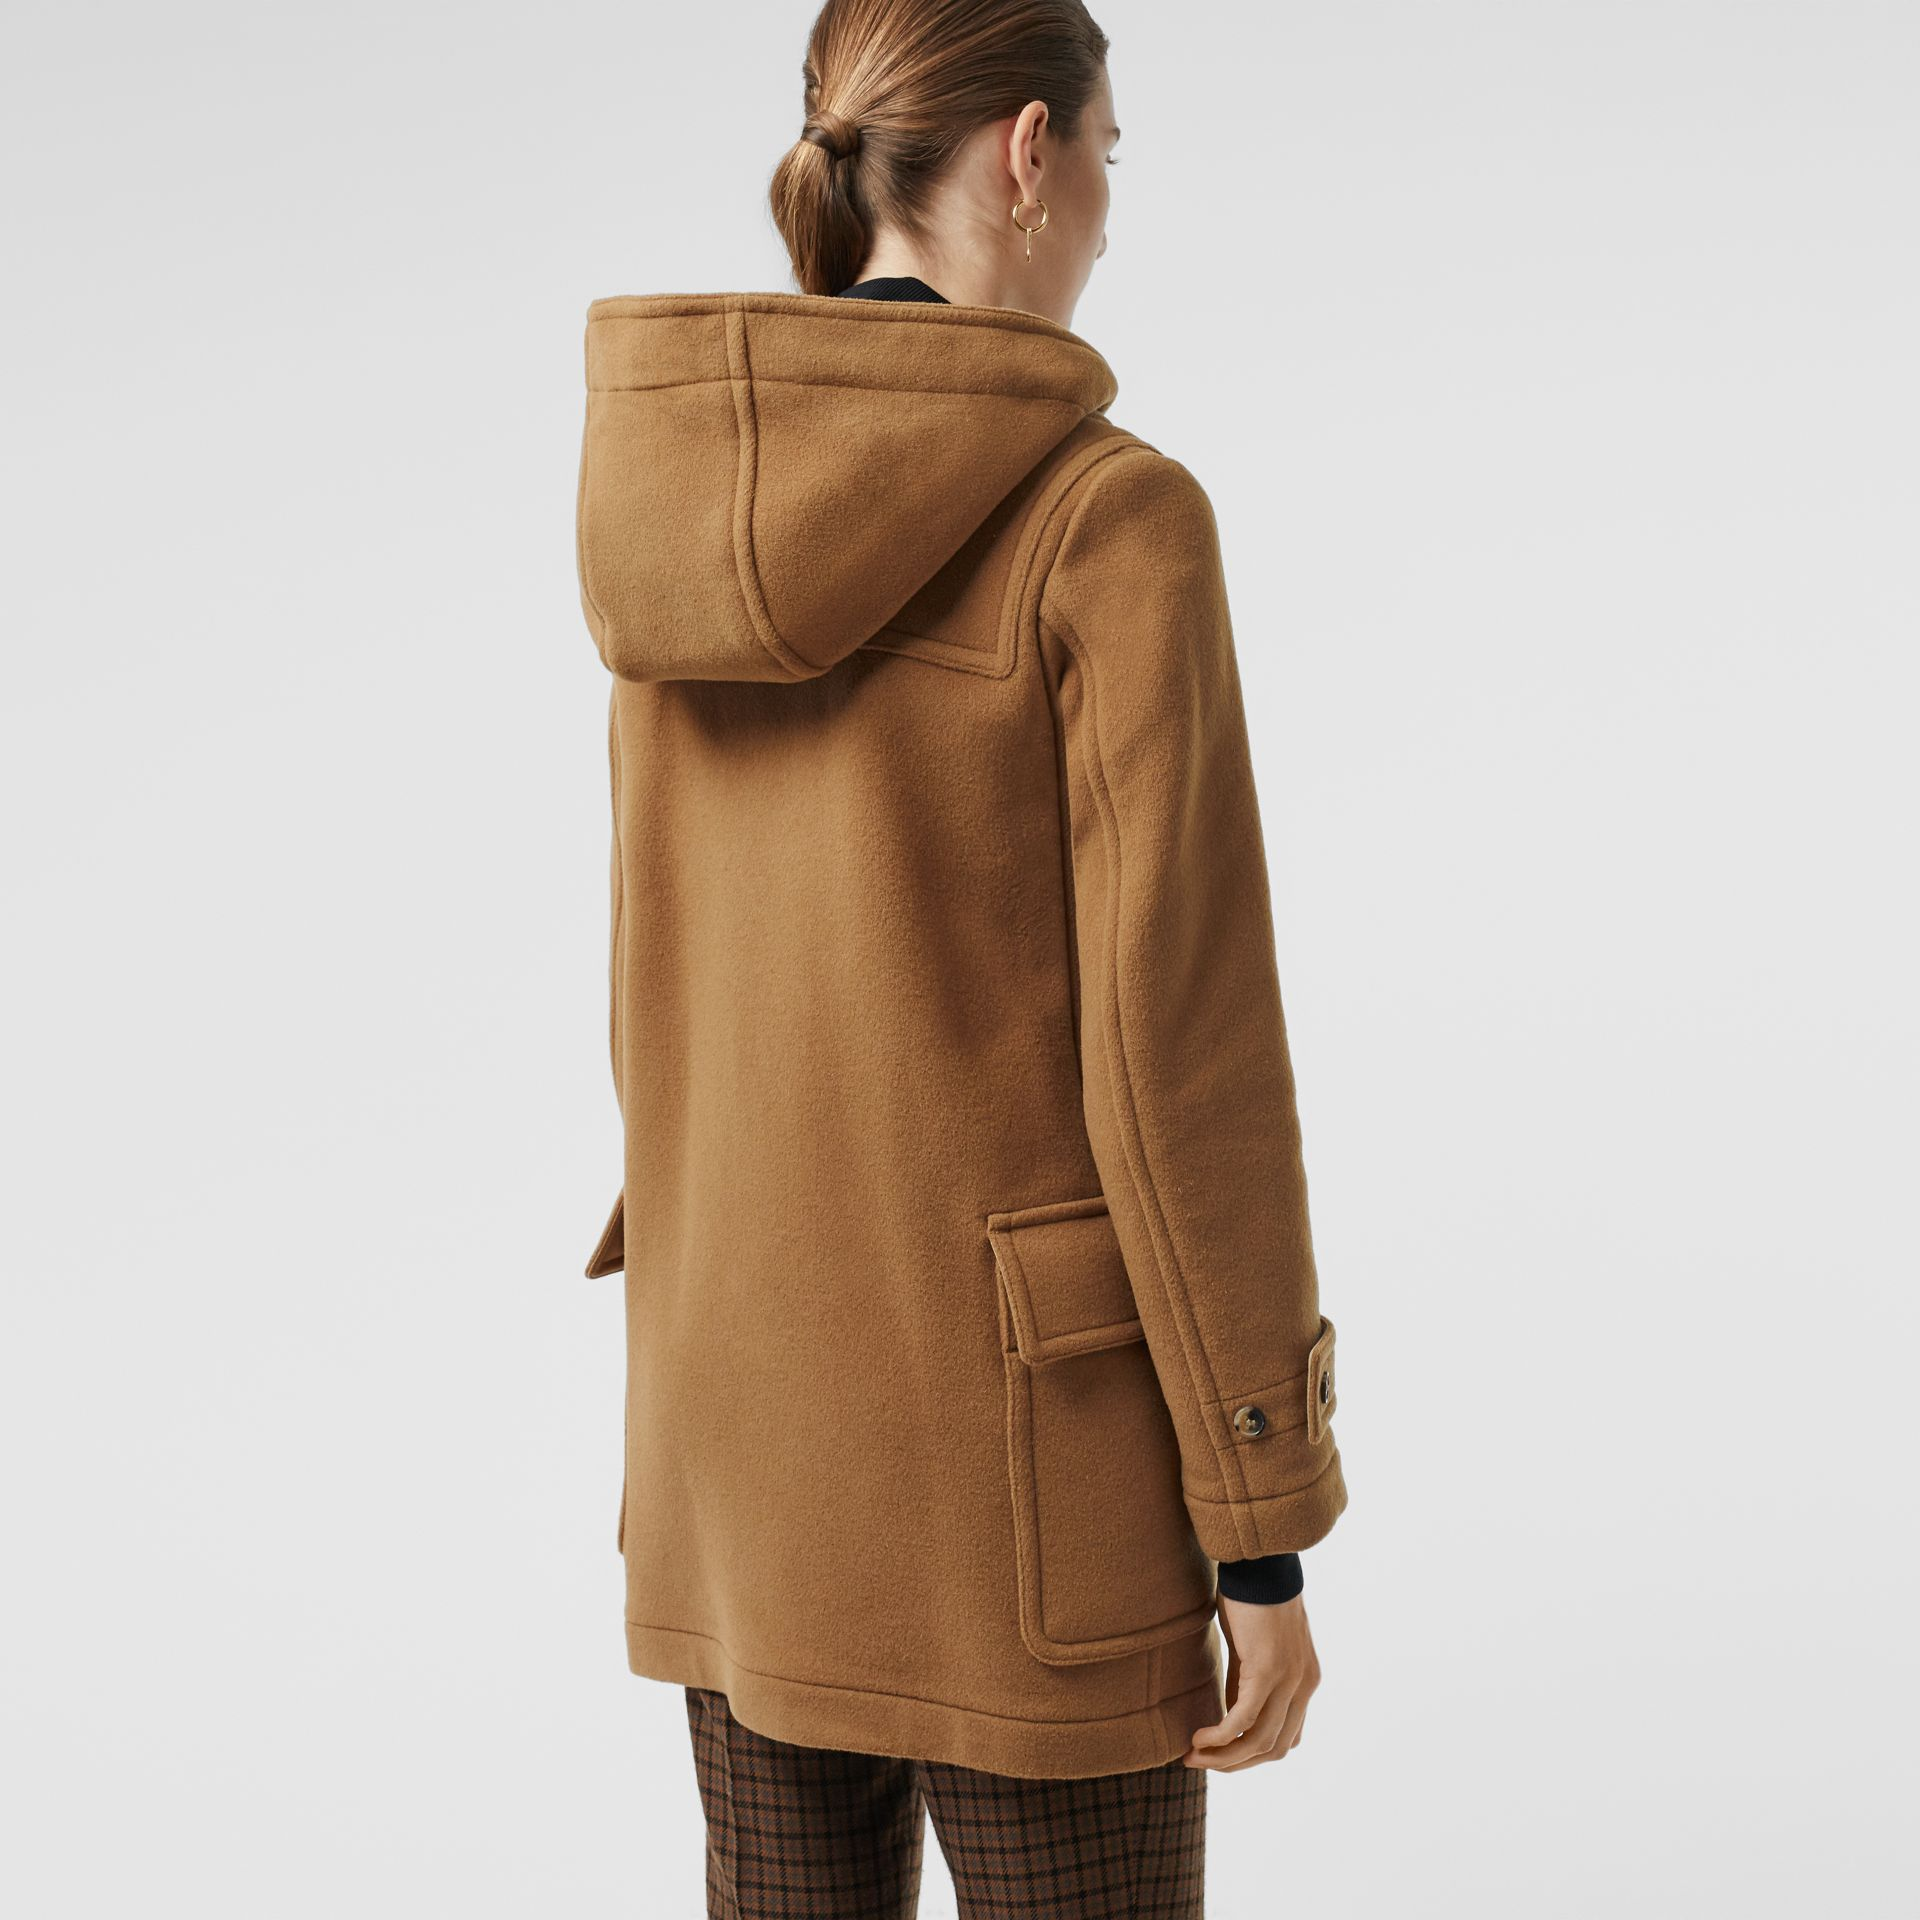 Wool Blend Duffle Coat in Camel - Women | Burberry - gallery image 2